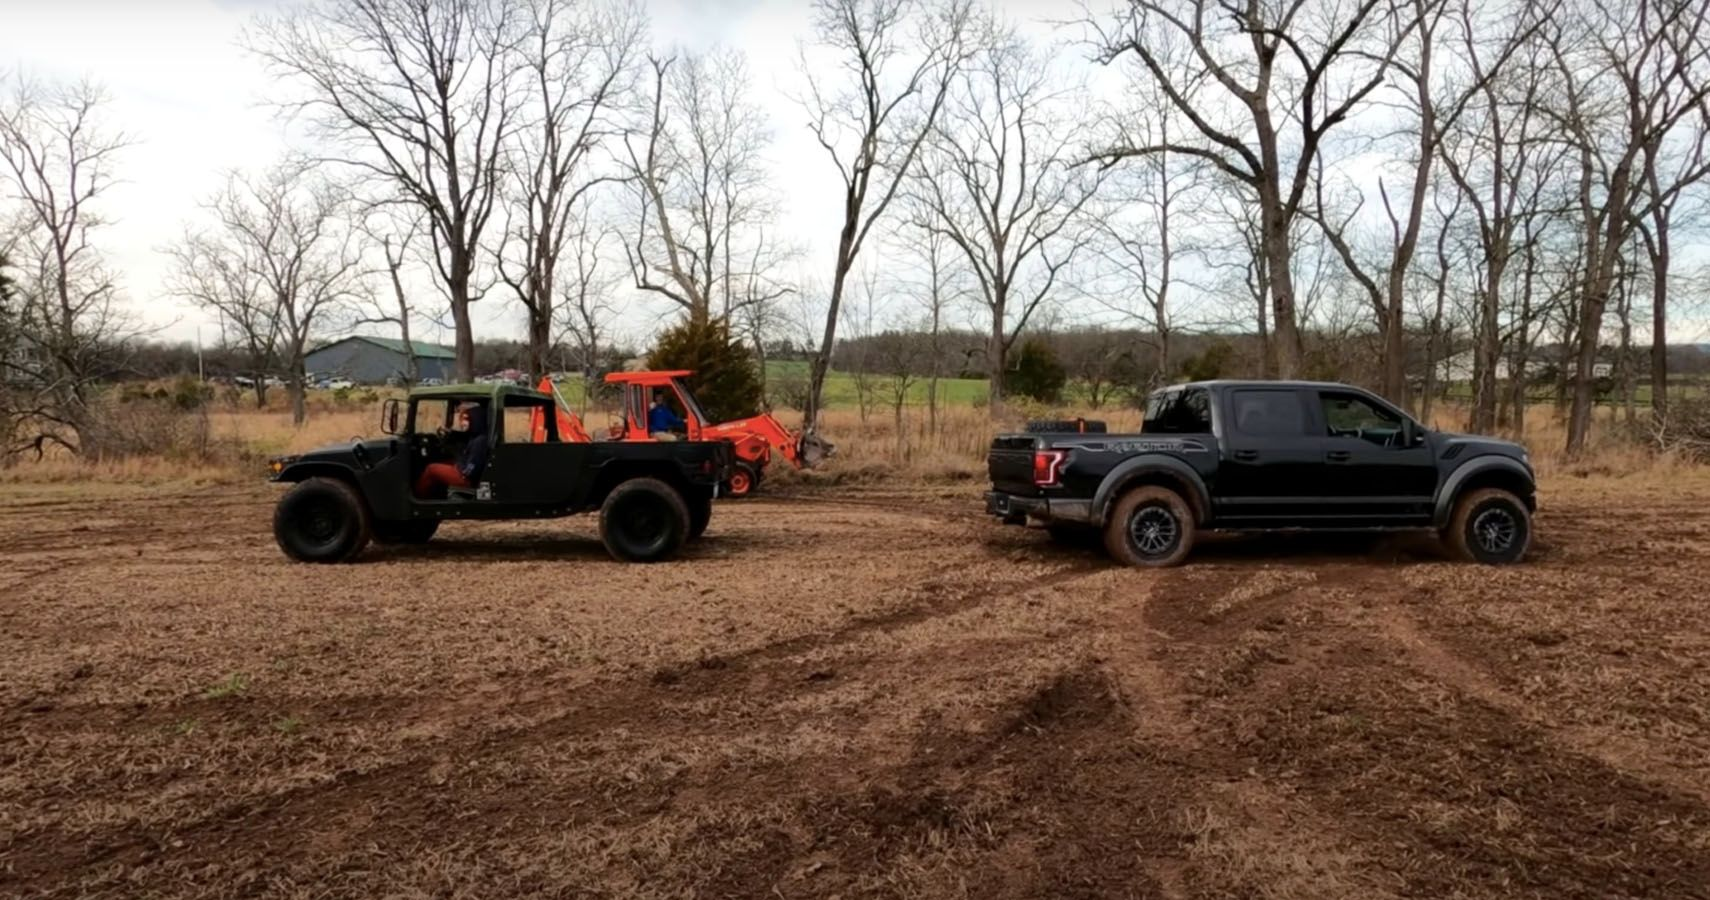 Ford Raptor Owner Jumps His Truck Over A Hummer In Wild Stunt No One Should Try At Home